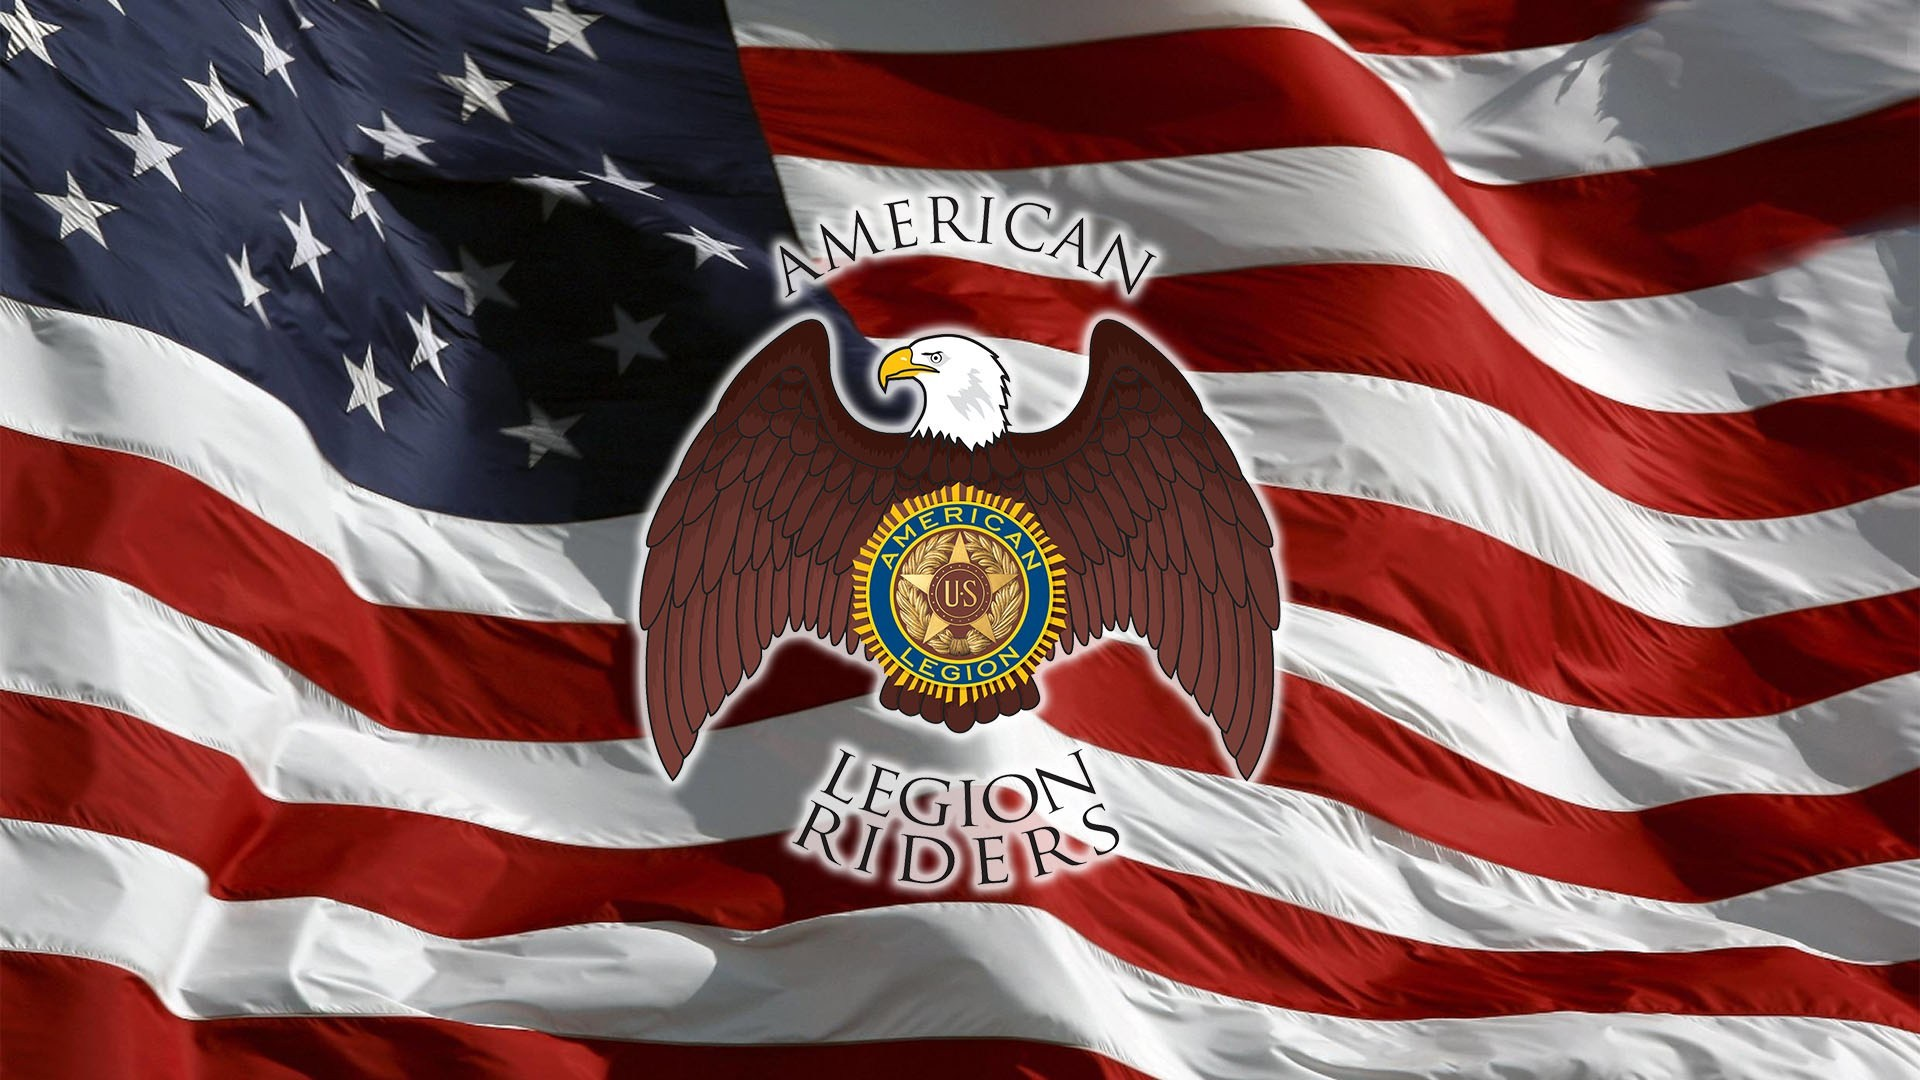 American Legion Riders Chapter 75 Memory Garden